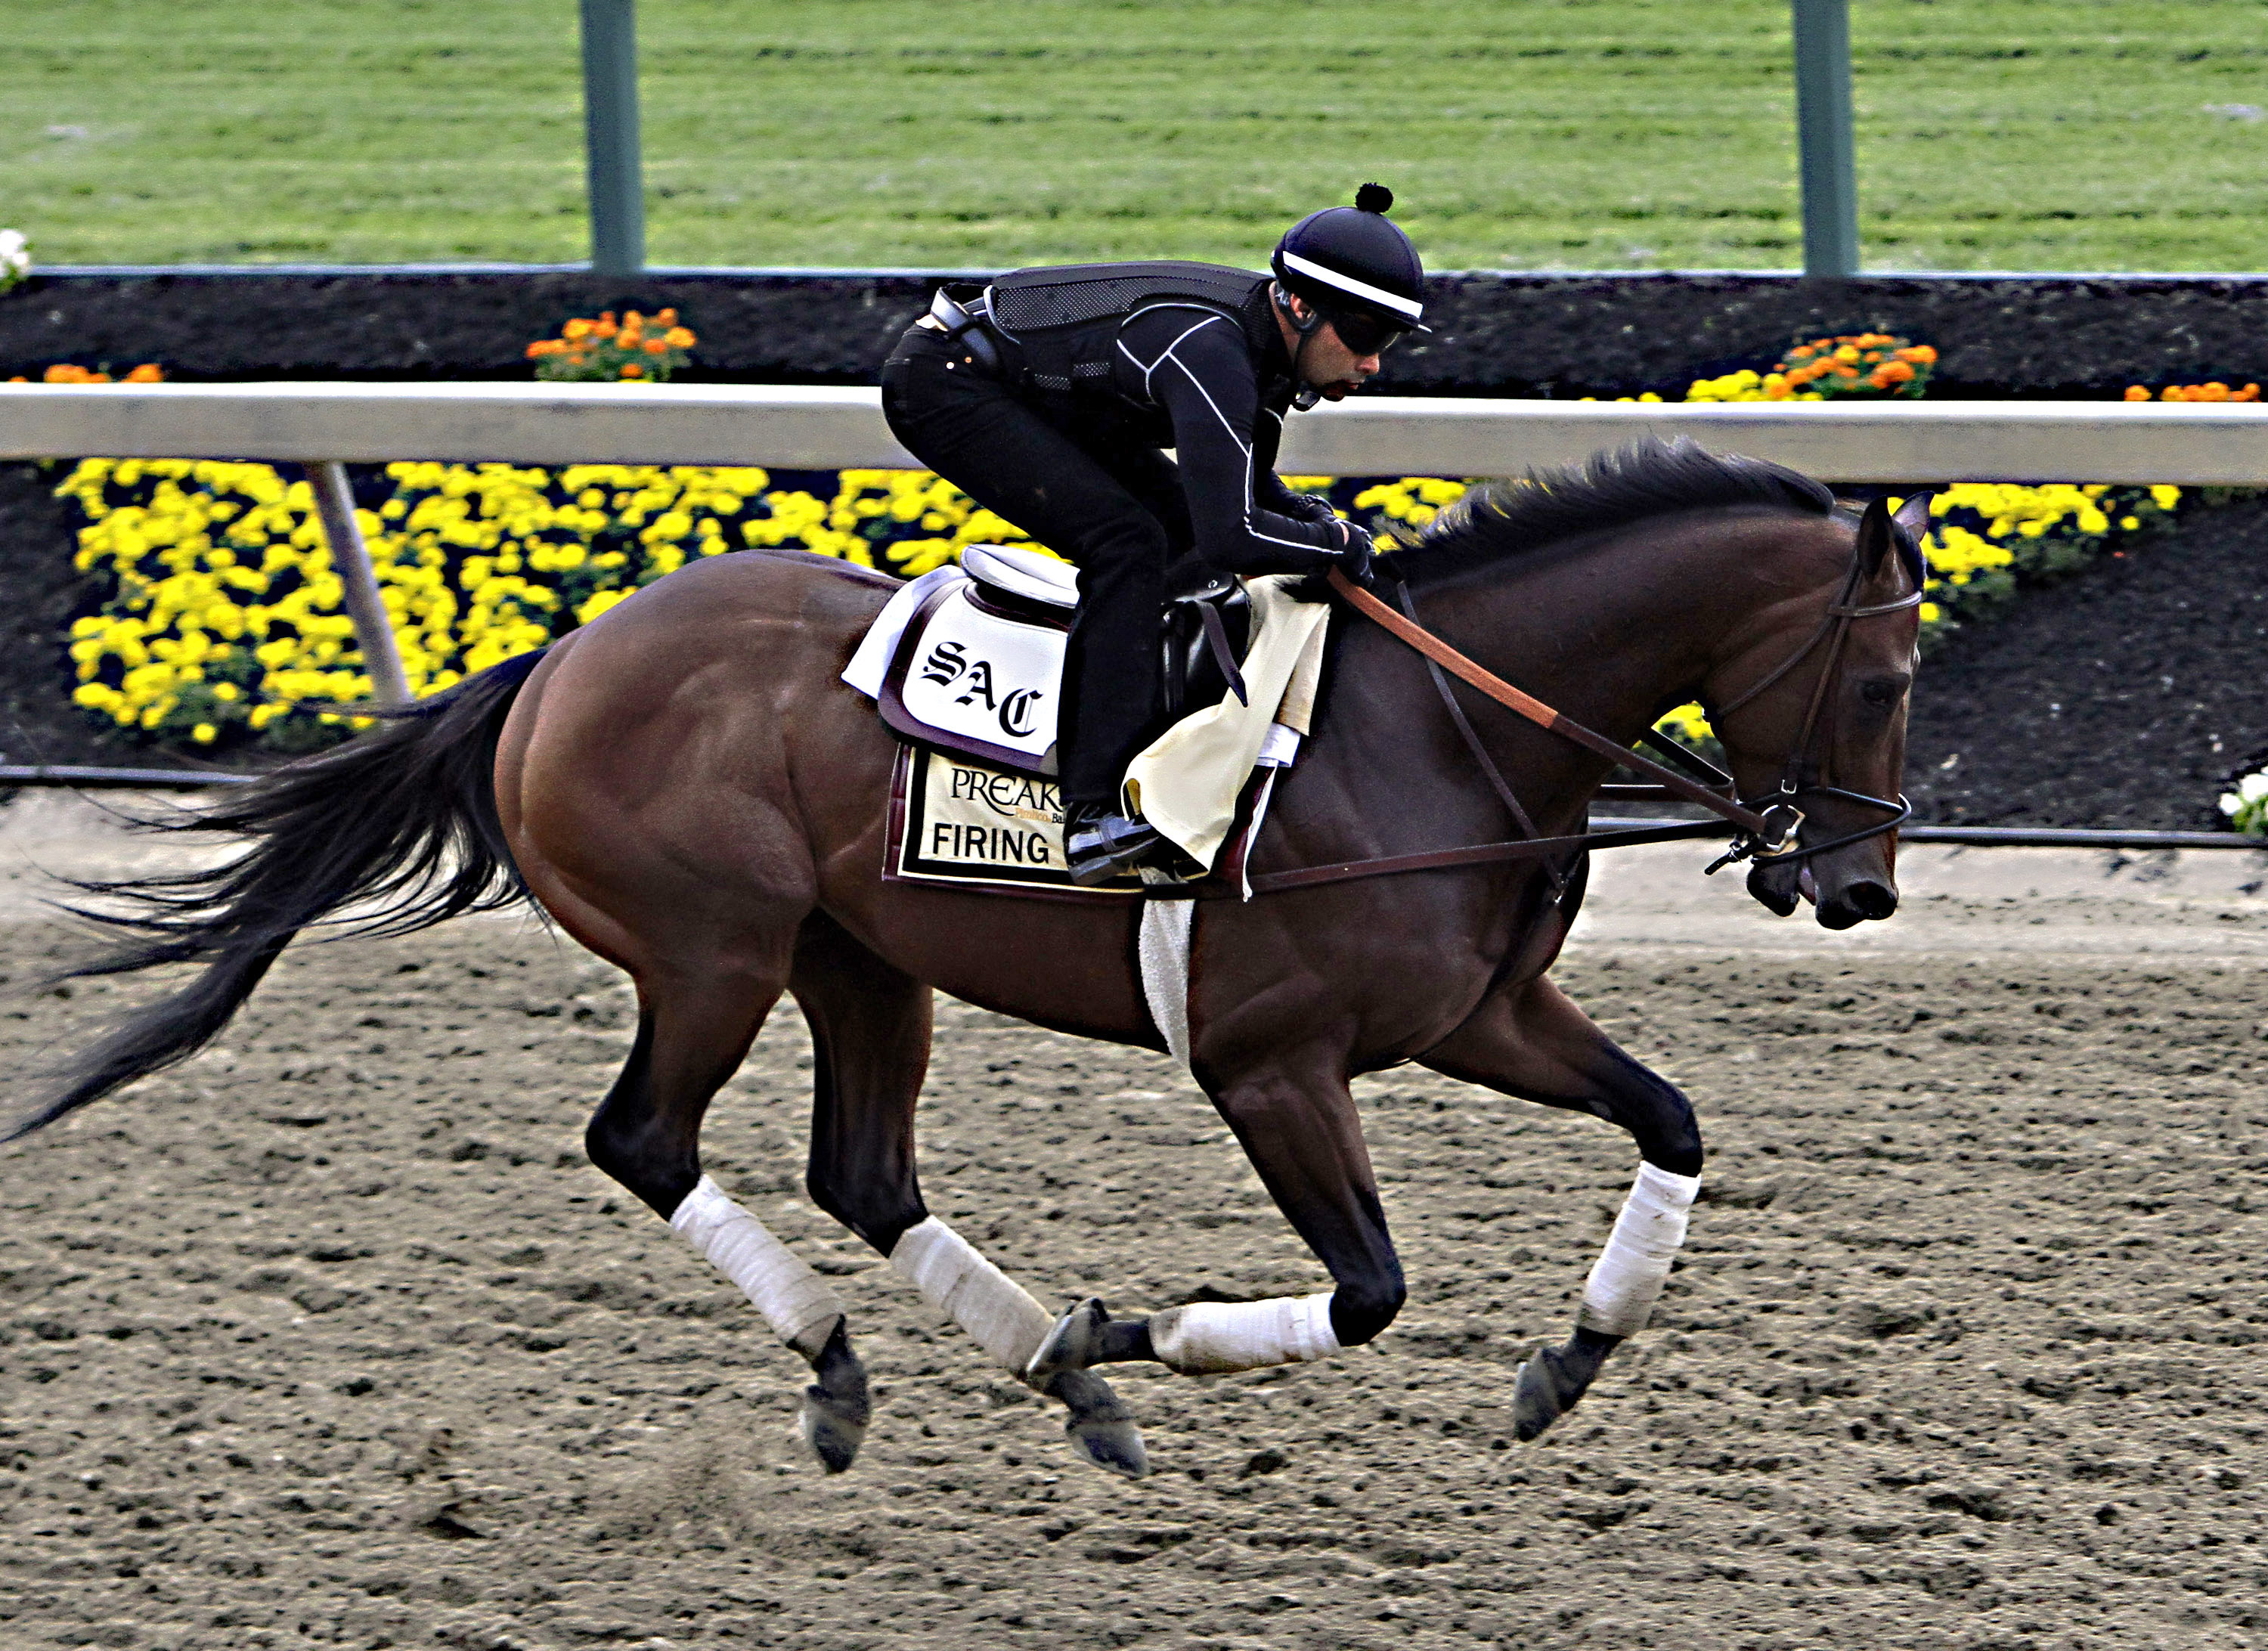 Exercise rider Umberto Gomez gallops Preakness Stakes entrant Firing Line at Pimlico Race Course in Baltimore, Friday, May 15, 2015.  (AP Photo/Garry Jones)